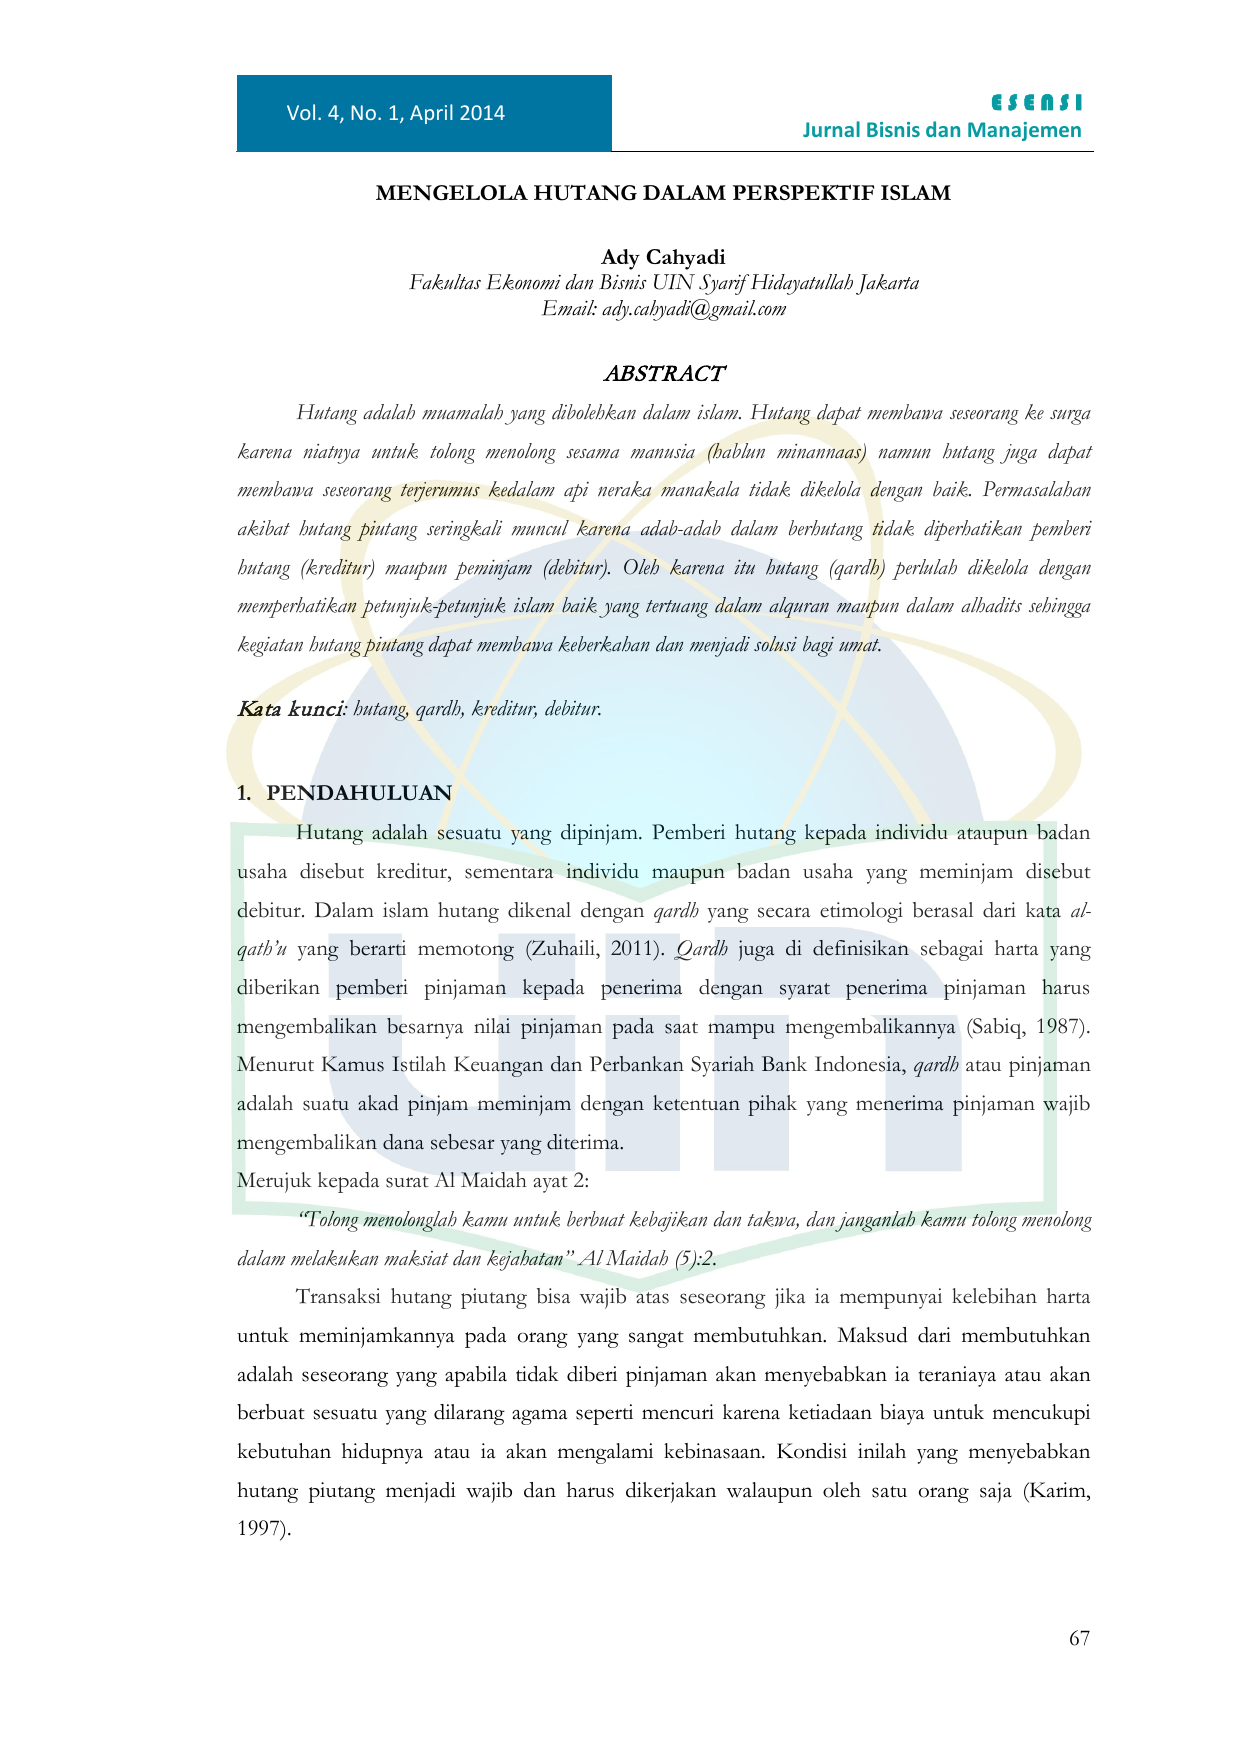 Abstract Repository Uin Jakarta